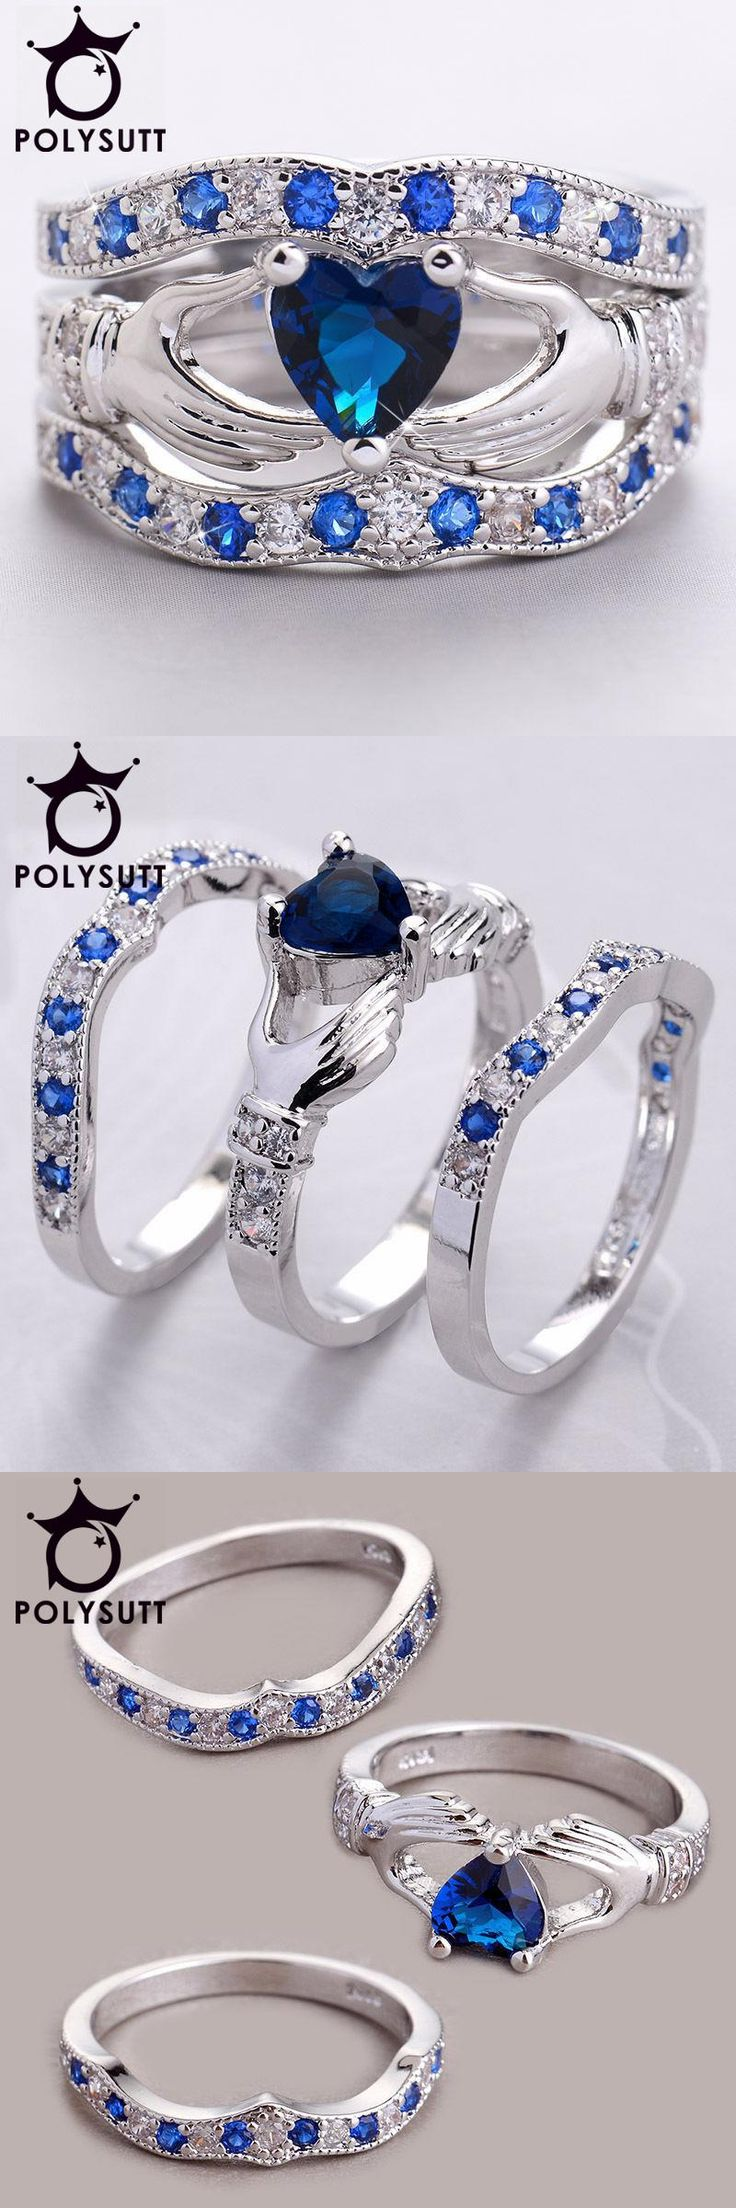 [Visit to Buy] Holding the Created love Heart AAA+ CZ Crown Wedding Ring Sets Silver Color Blue Crystal Irish Claddagh Rings 3pcs/set #Advertisement